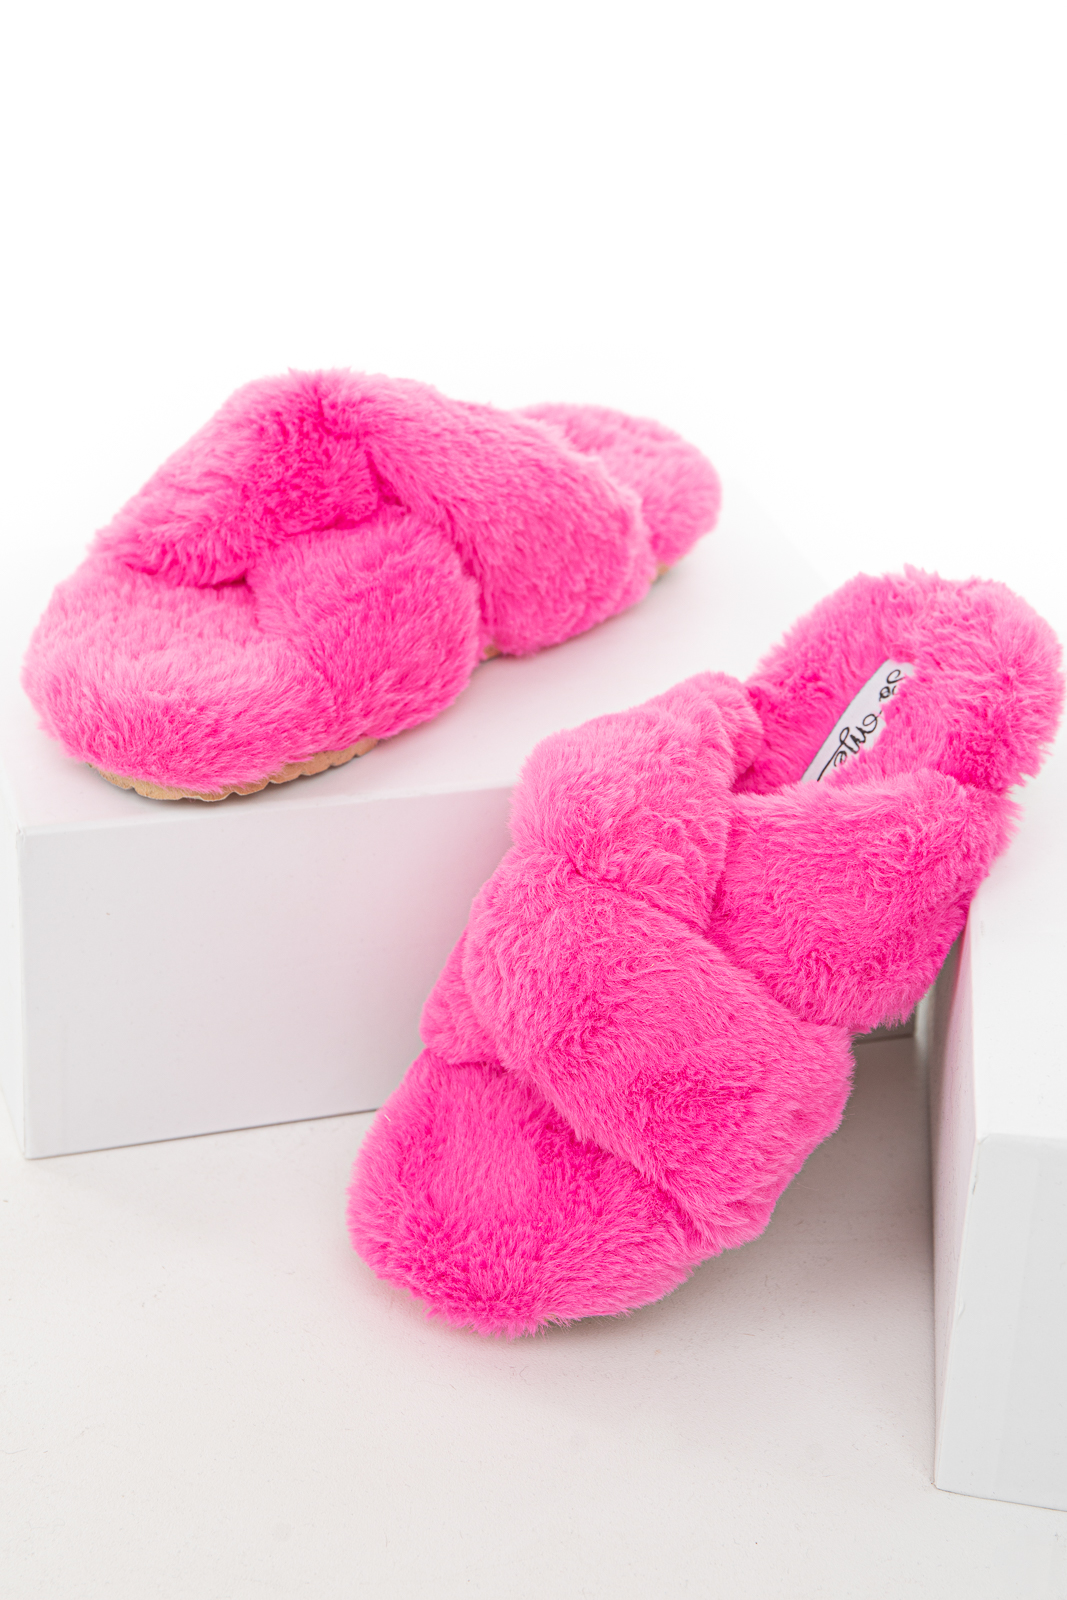 Hot Pink Fuzzy Soft Sandal Slippers with Criss Cross Details